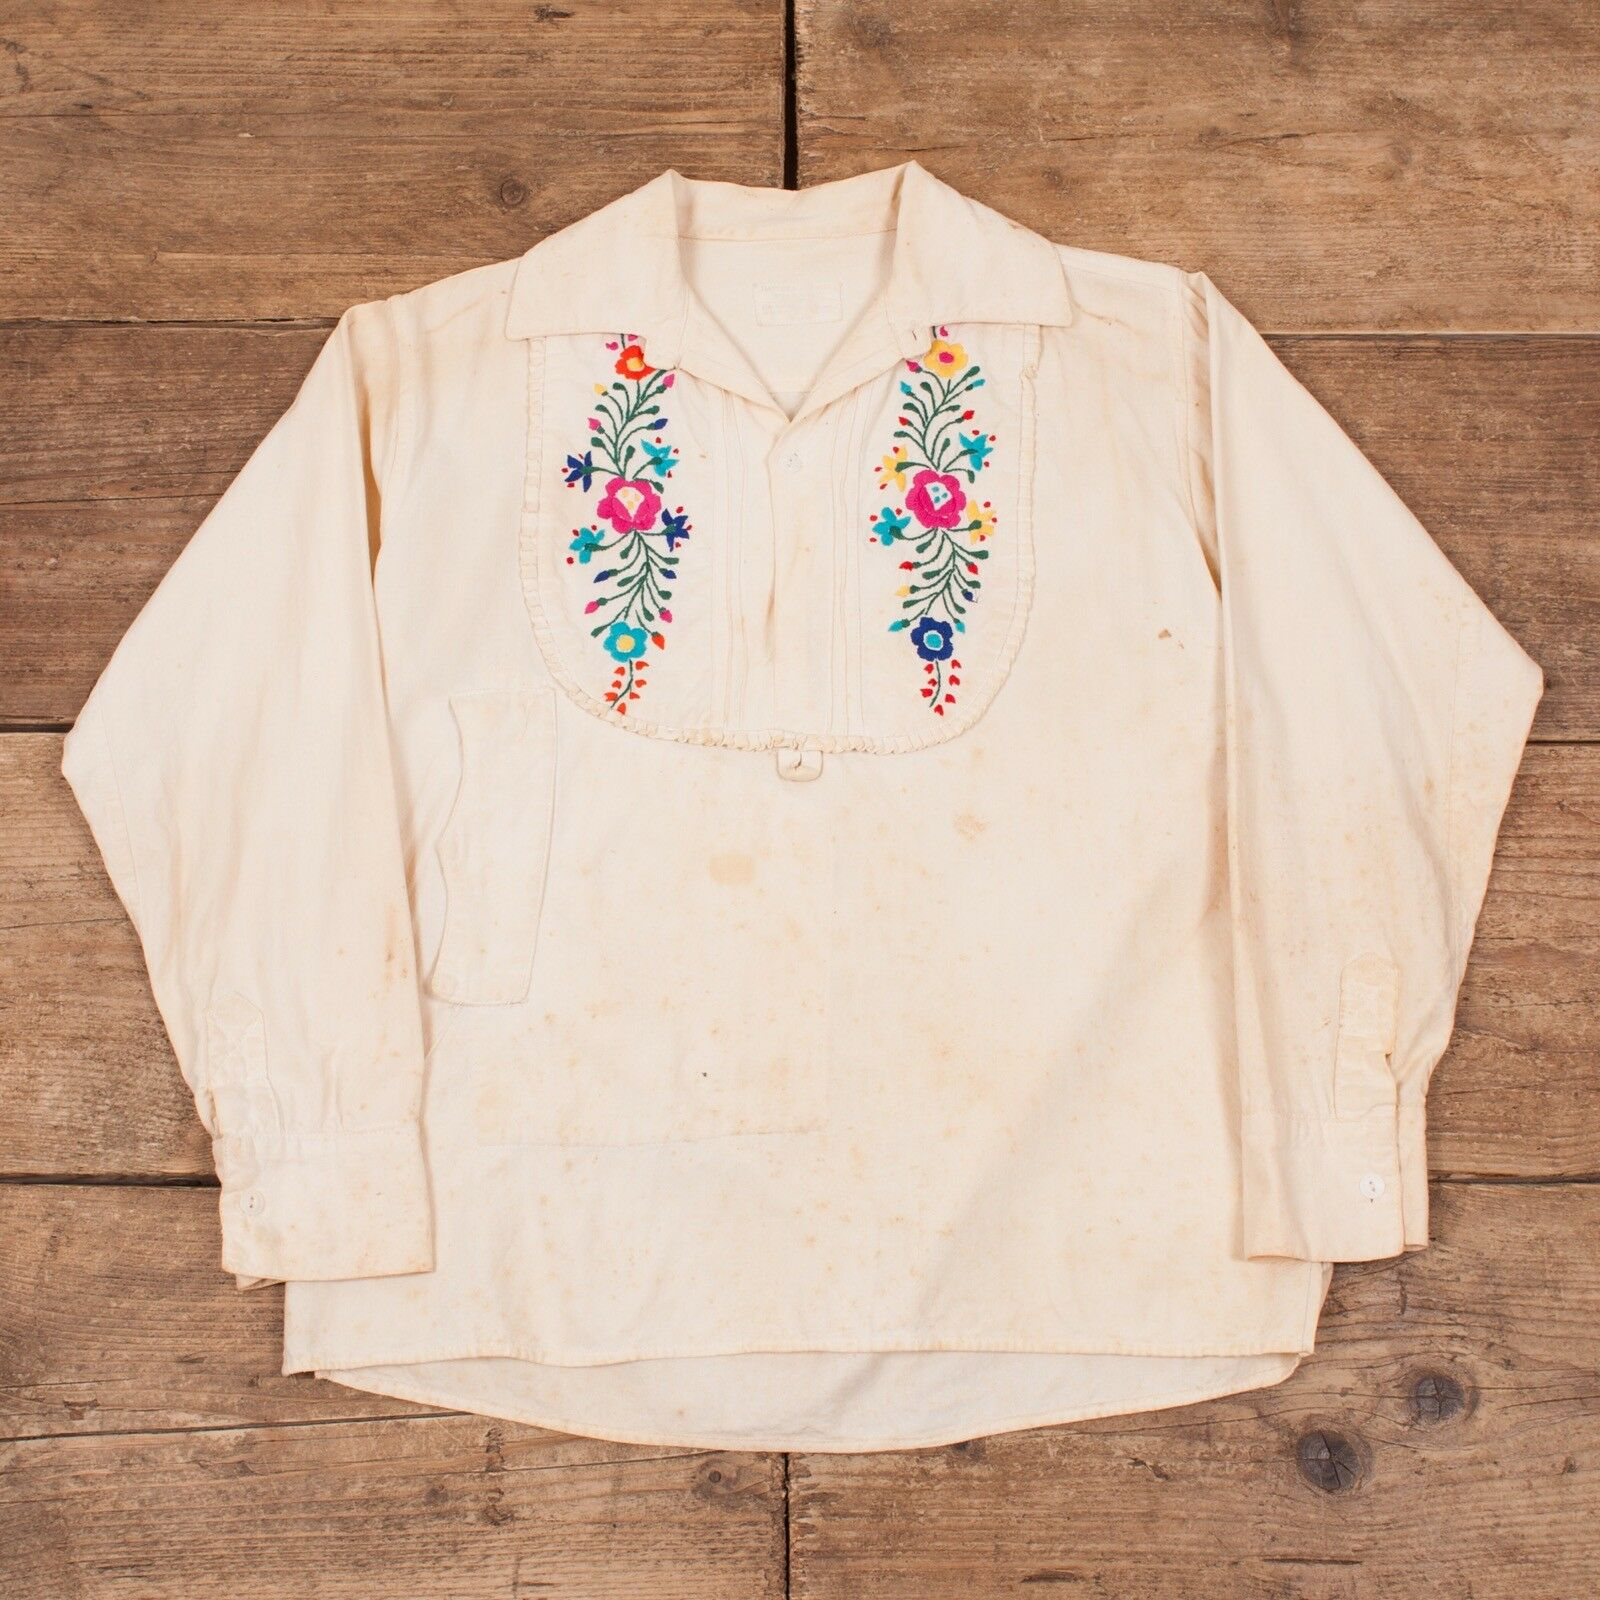 damen Vintage 1930s Boho Mexican Embroiderot Blouse Shirt XR 8601